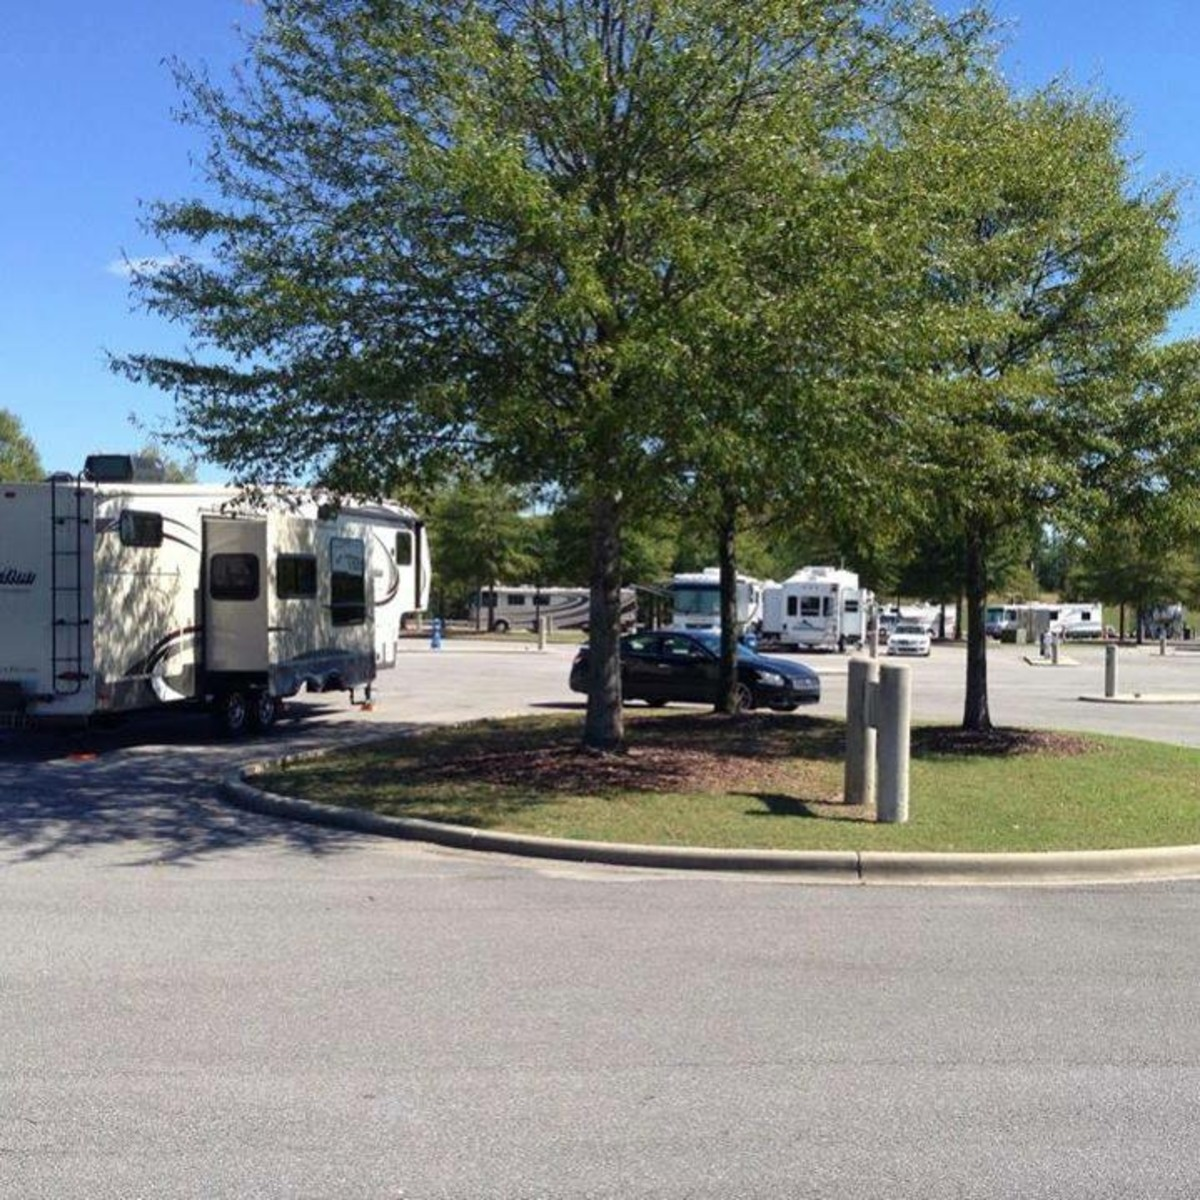 A beautiful October day at the Hoover RV Park.